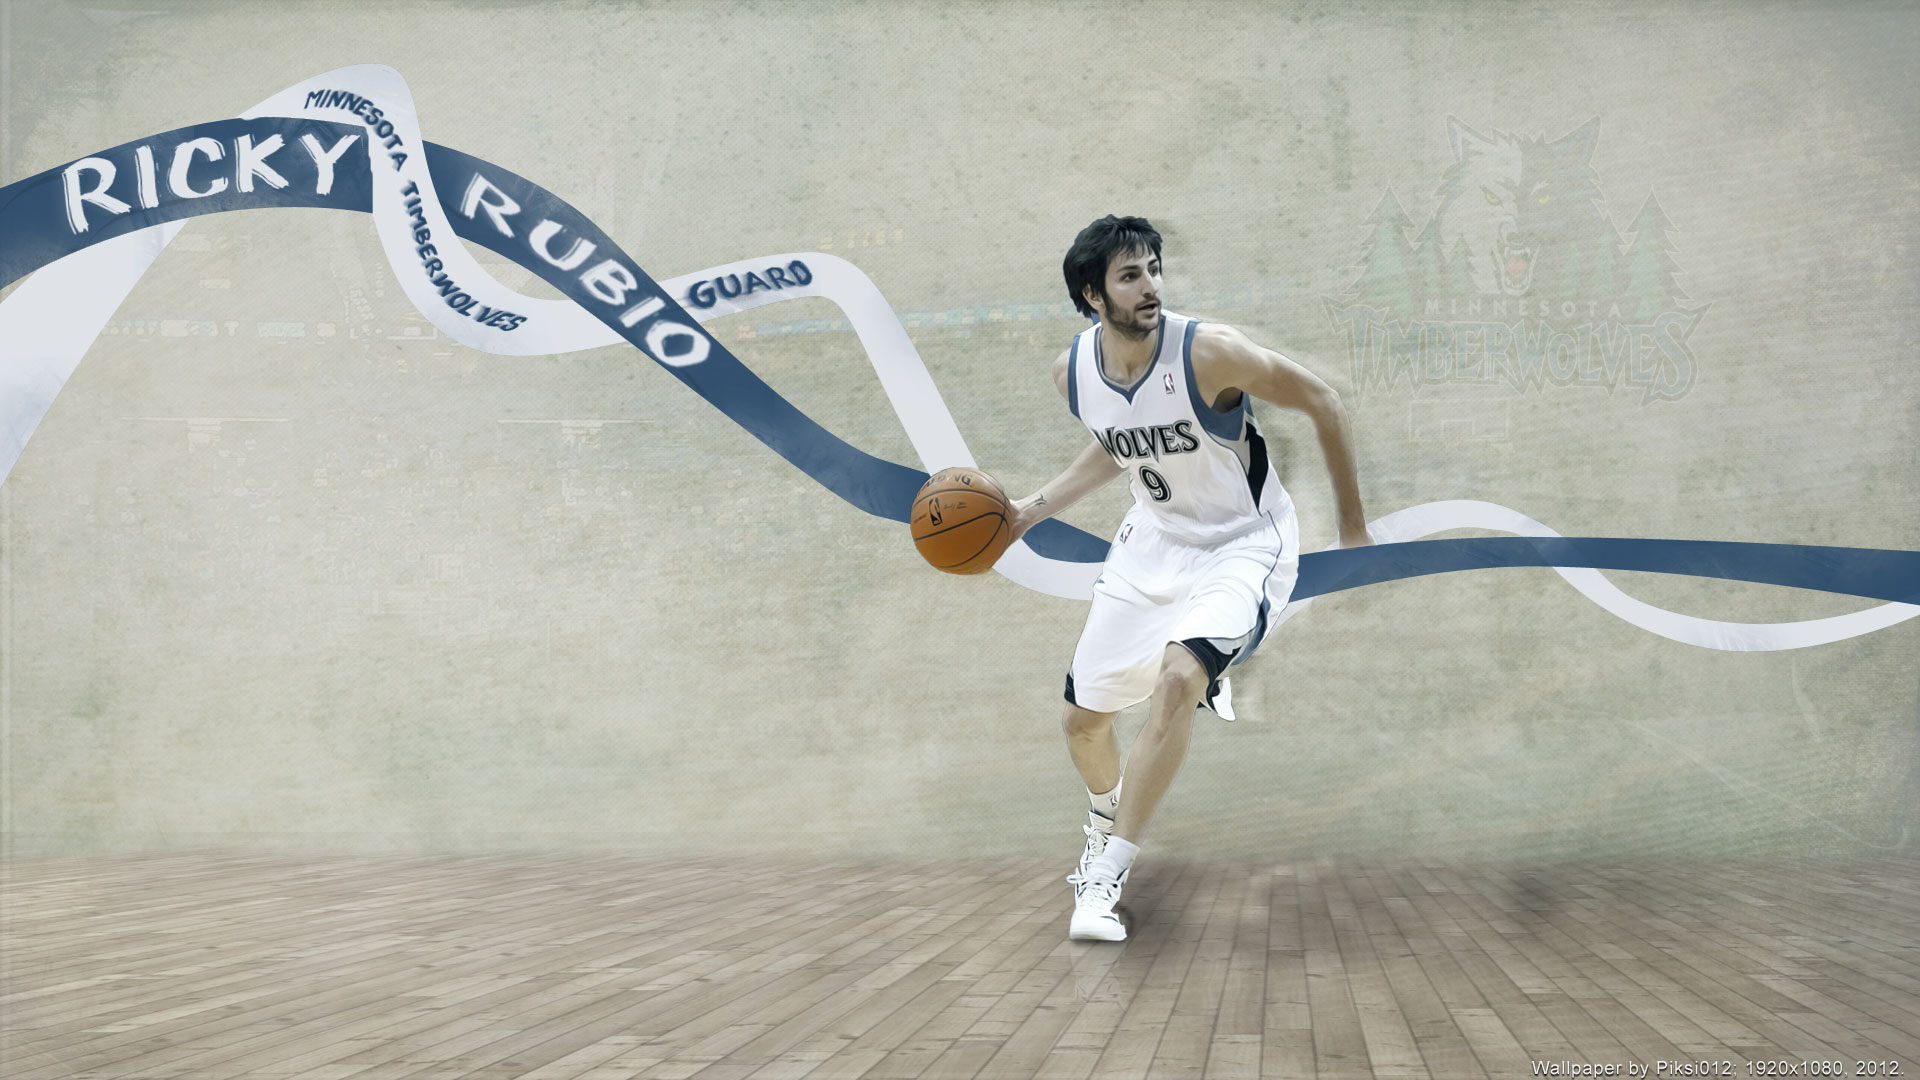 Real Madrid Iphone X Wallpaper Ricky Rubio 1920 215 1080 Wallpaper Basketball Wallpapers At